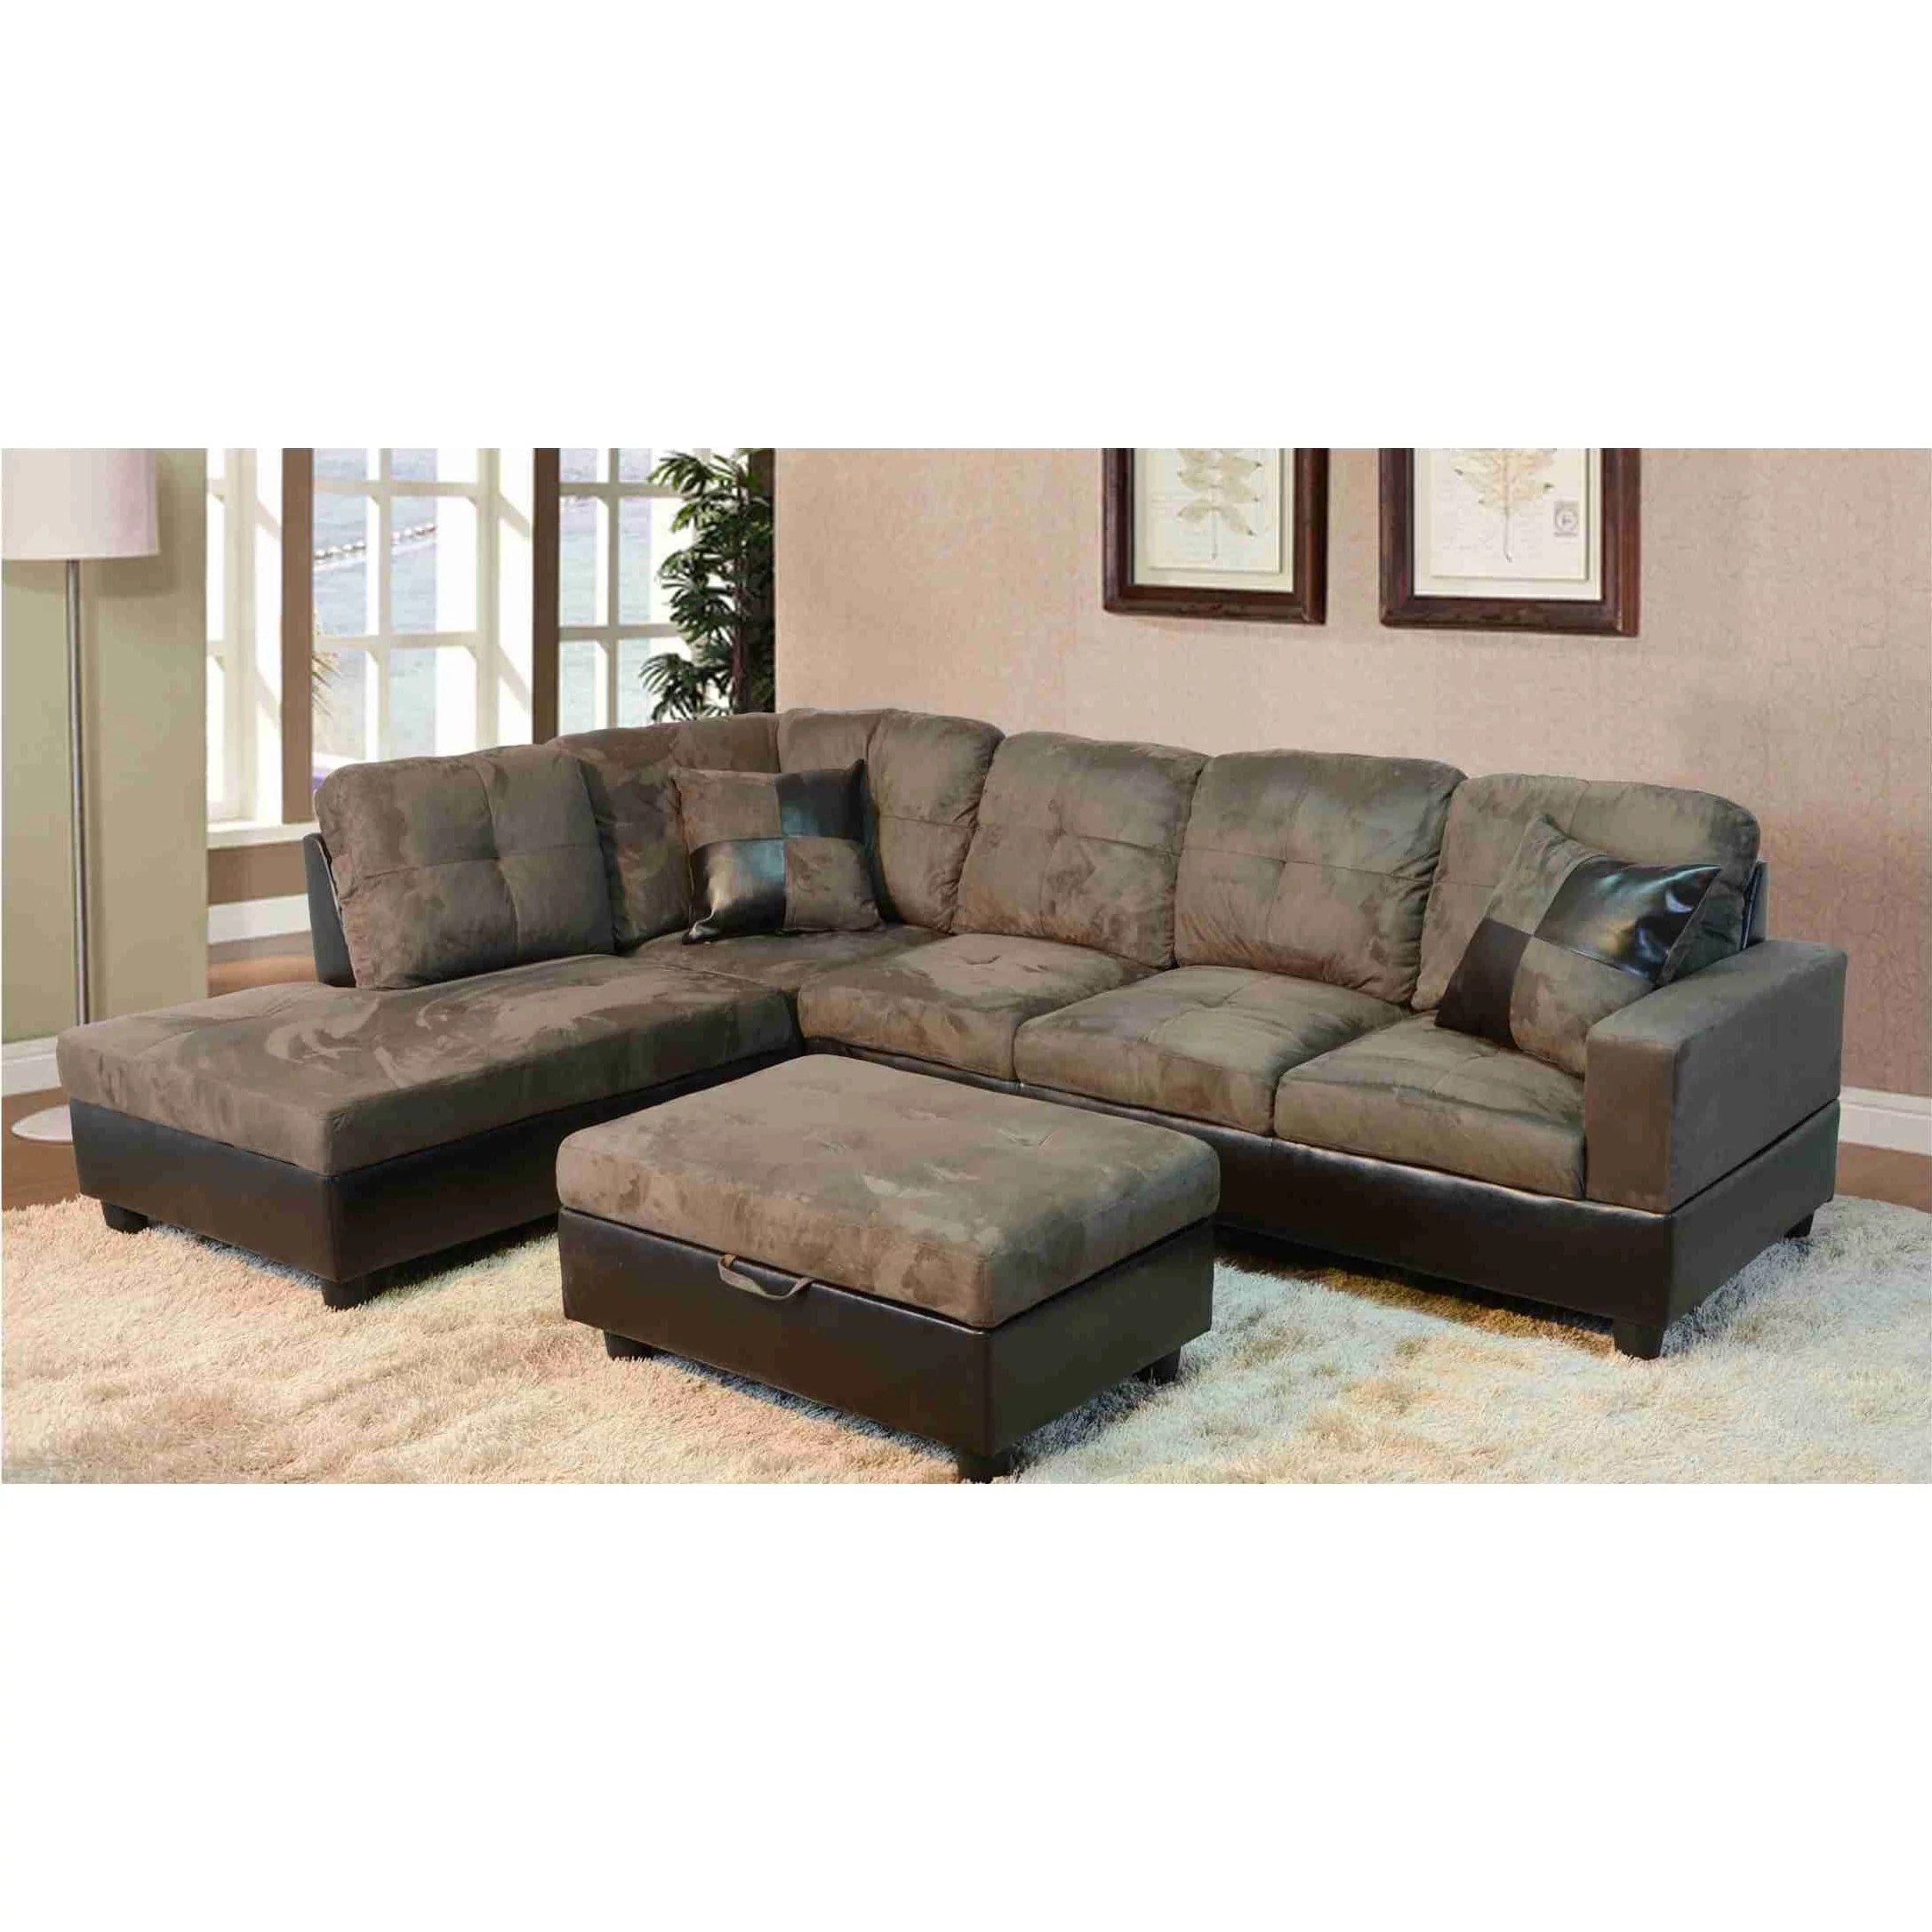 lifestyle furniture lf102a avellino left hand facing sectional sofa olive green 35 x 103 5 x 74 5 in